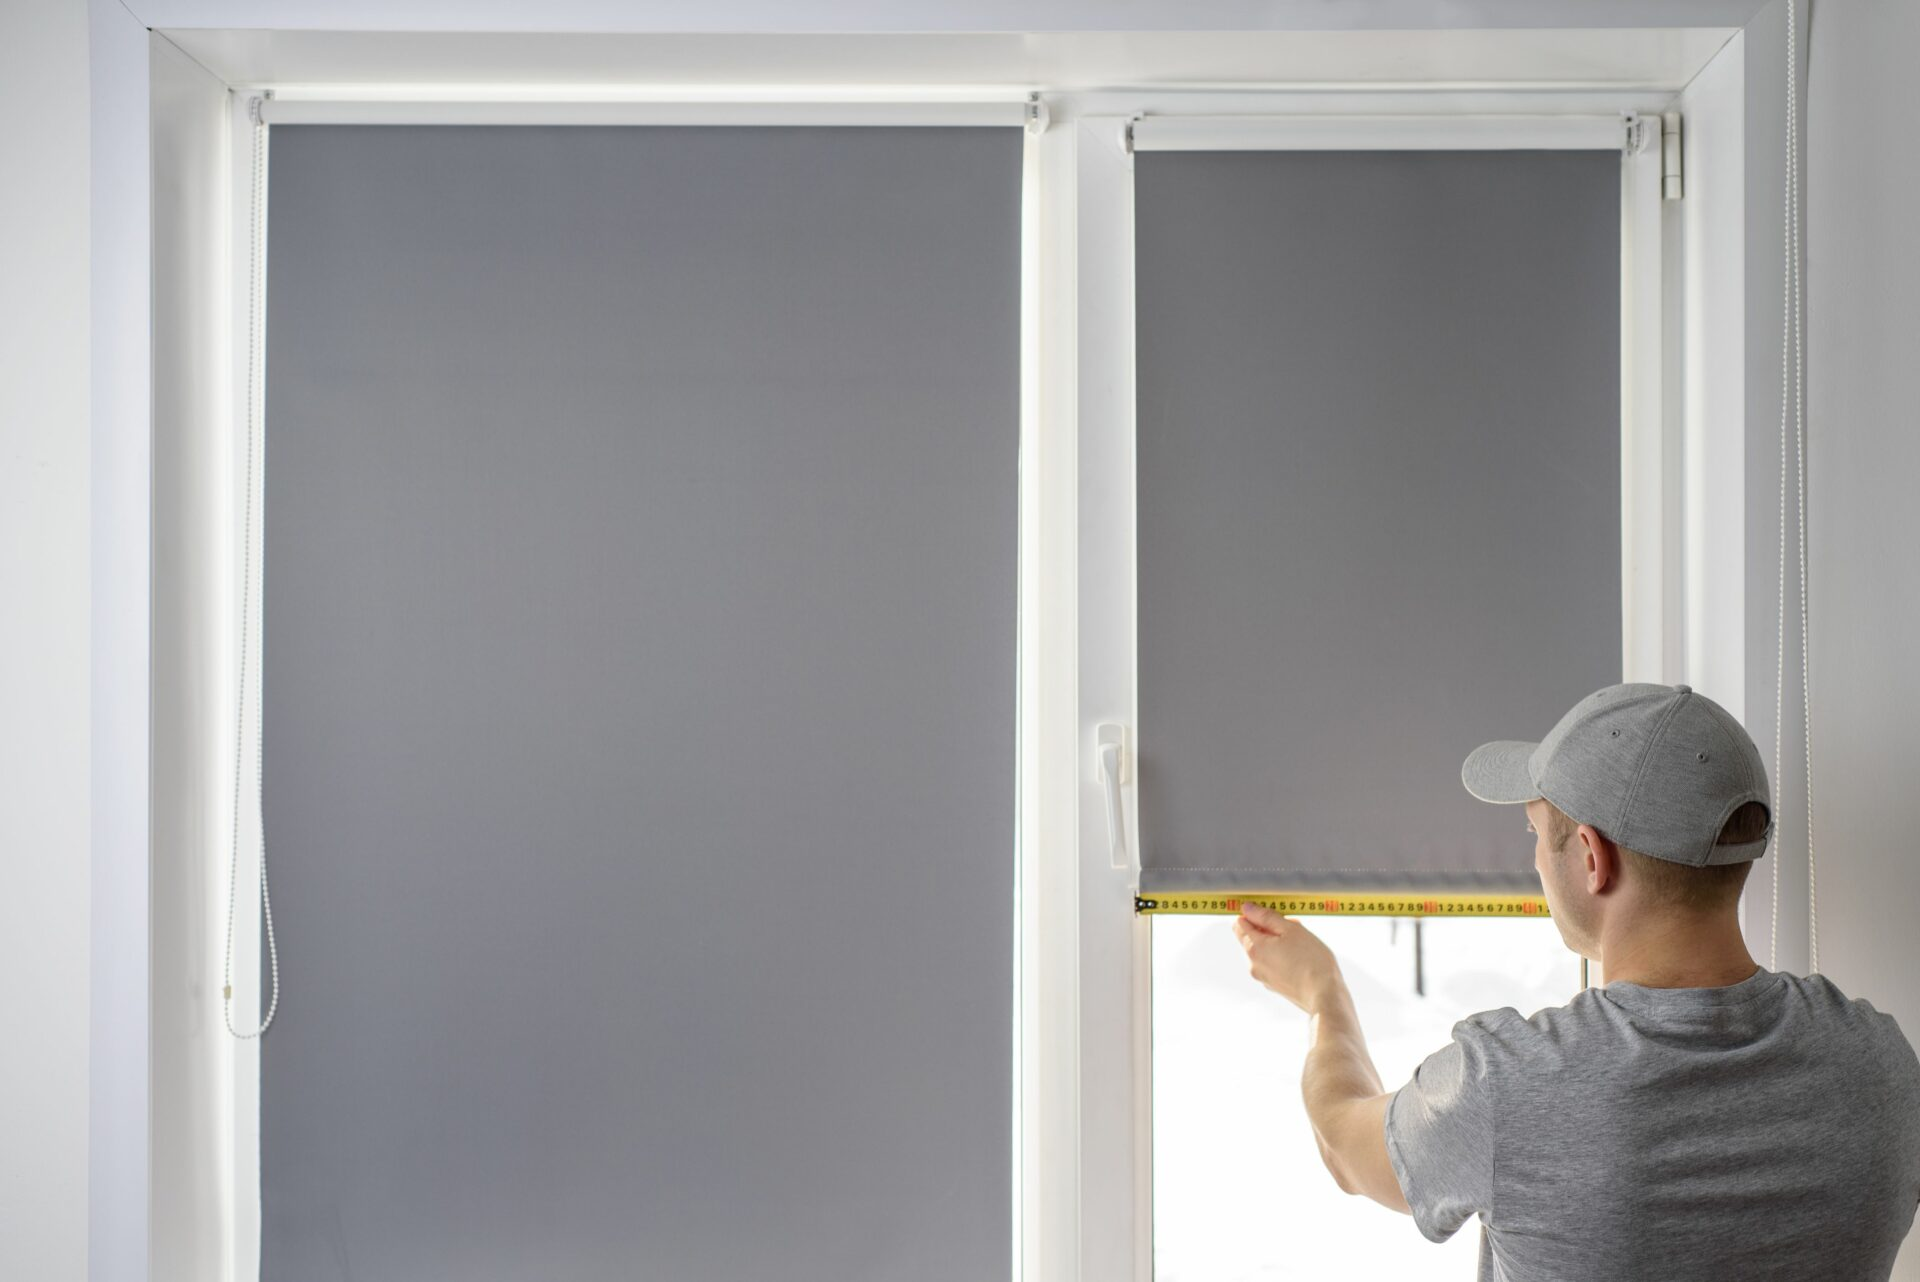 Roller shade is perfect choice for blackout purpose